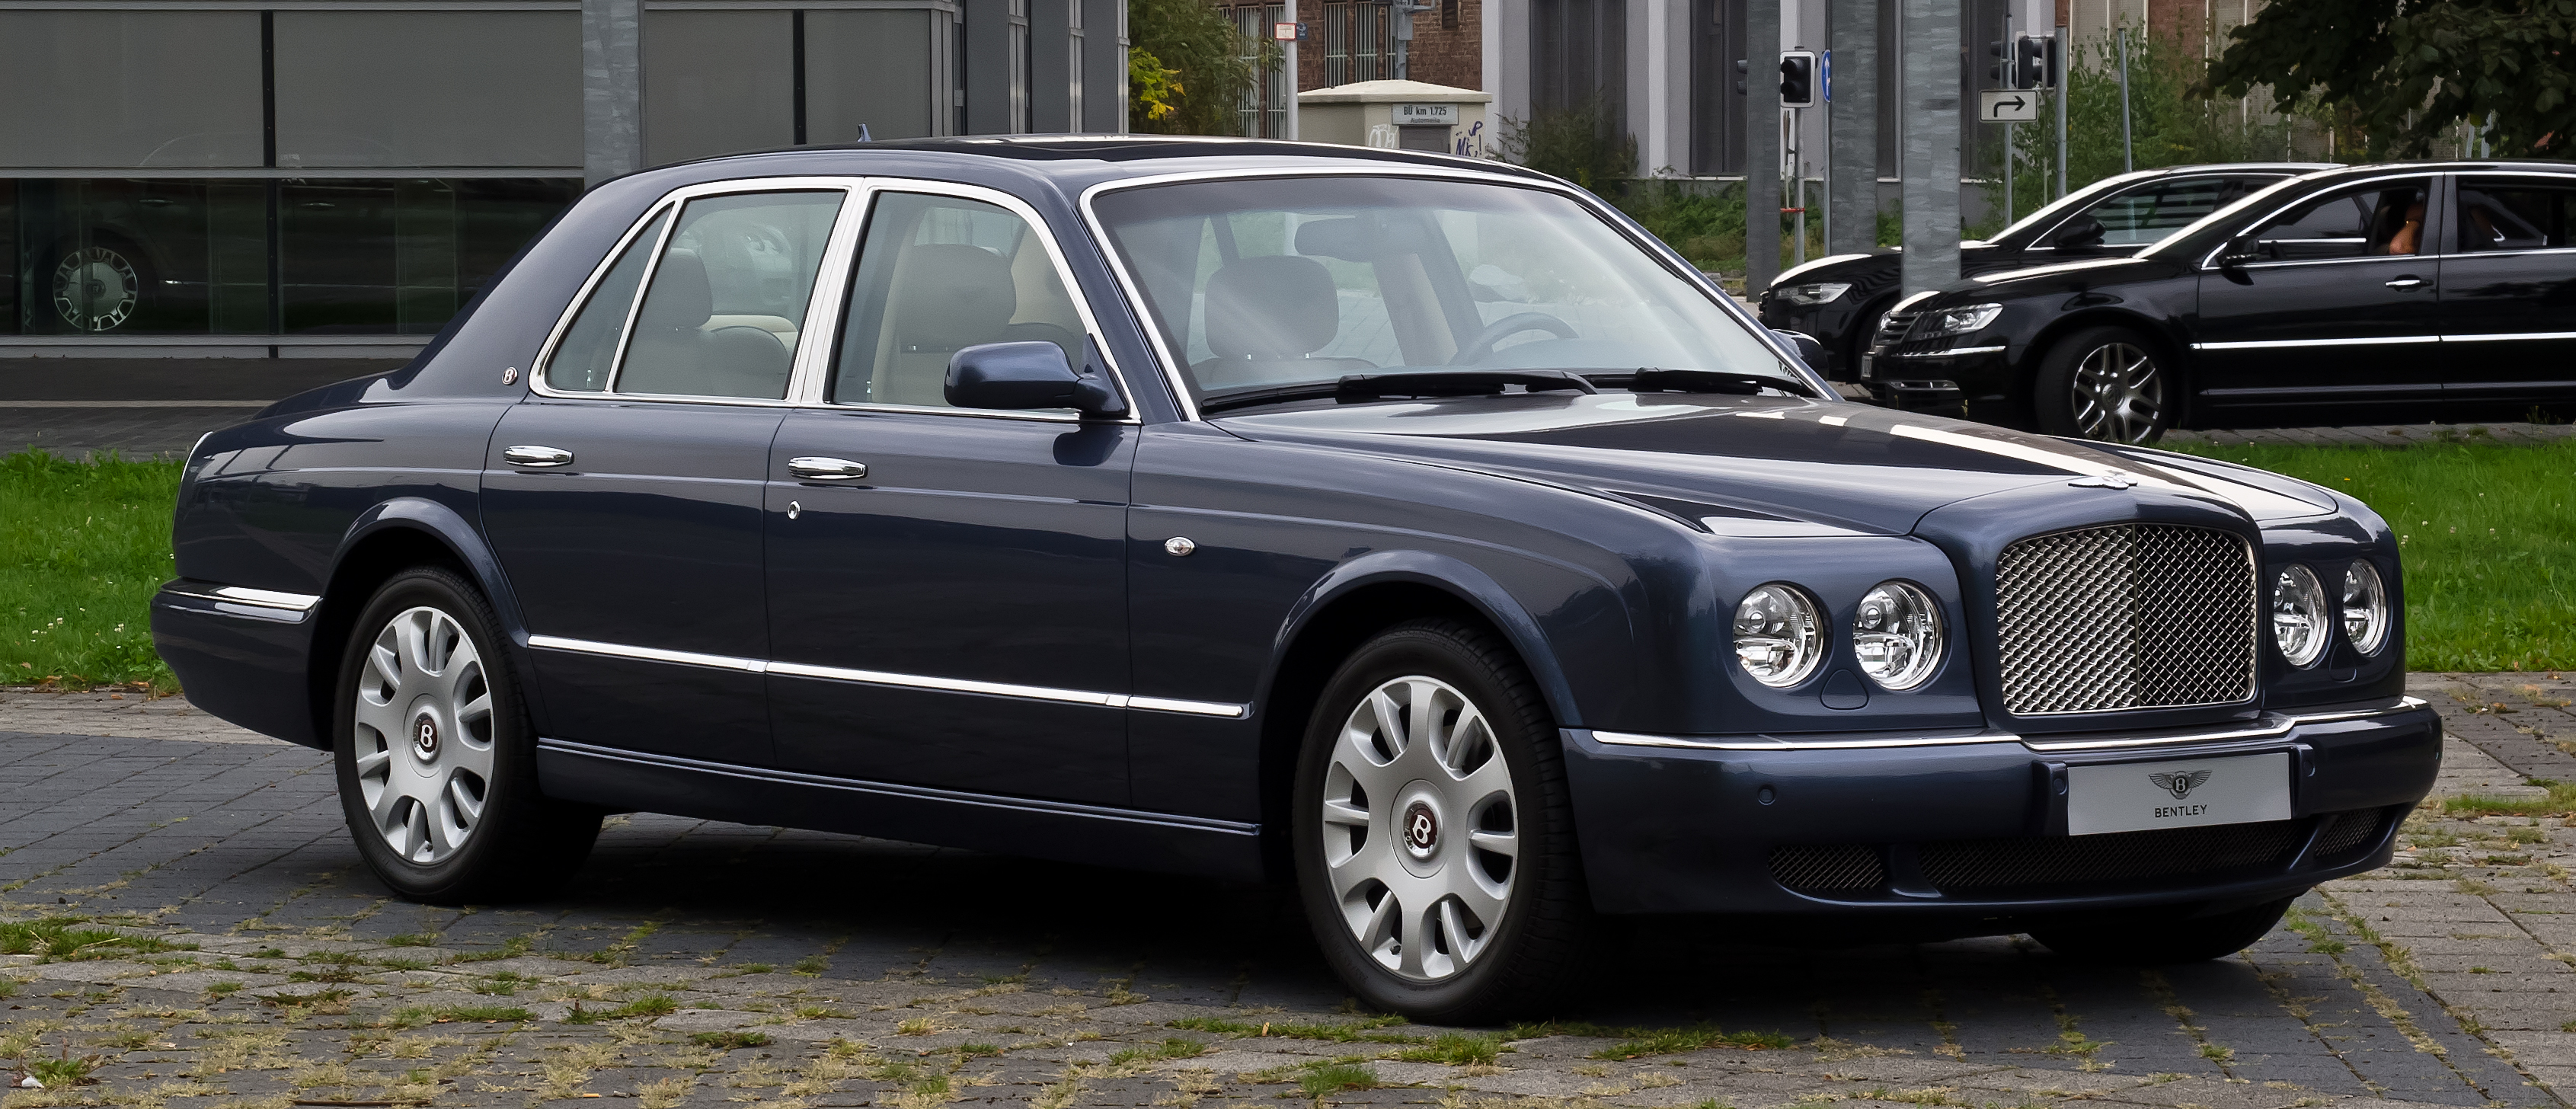 rl q arnage vat gallery bentley image pre vehicles luxury london gve for sale owned